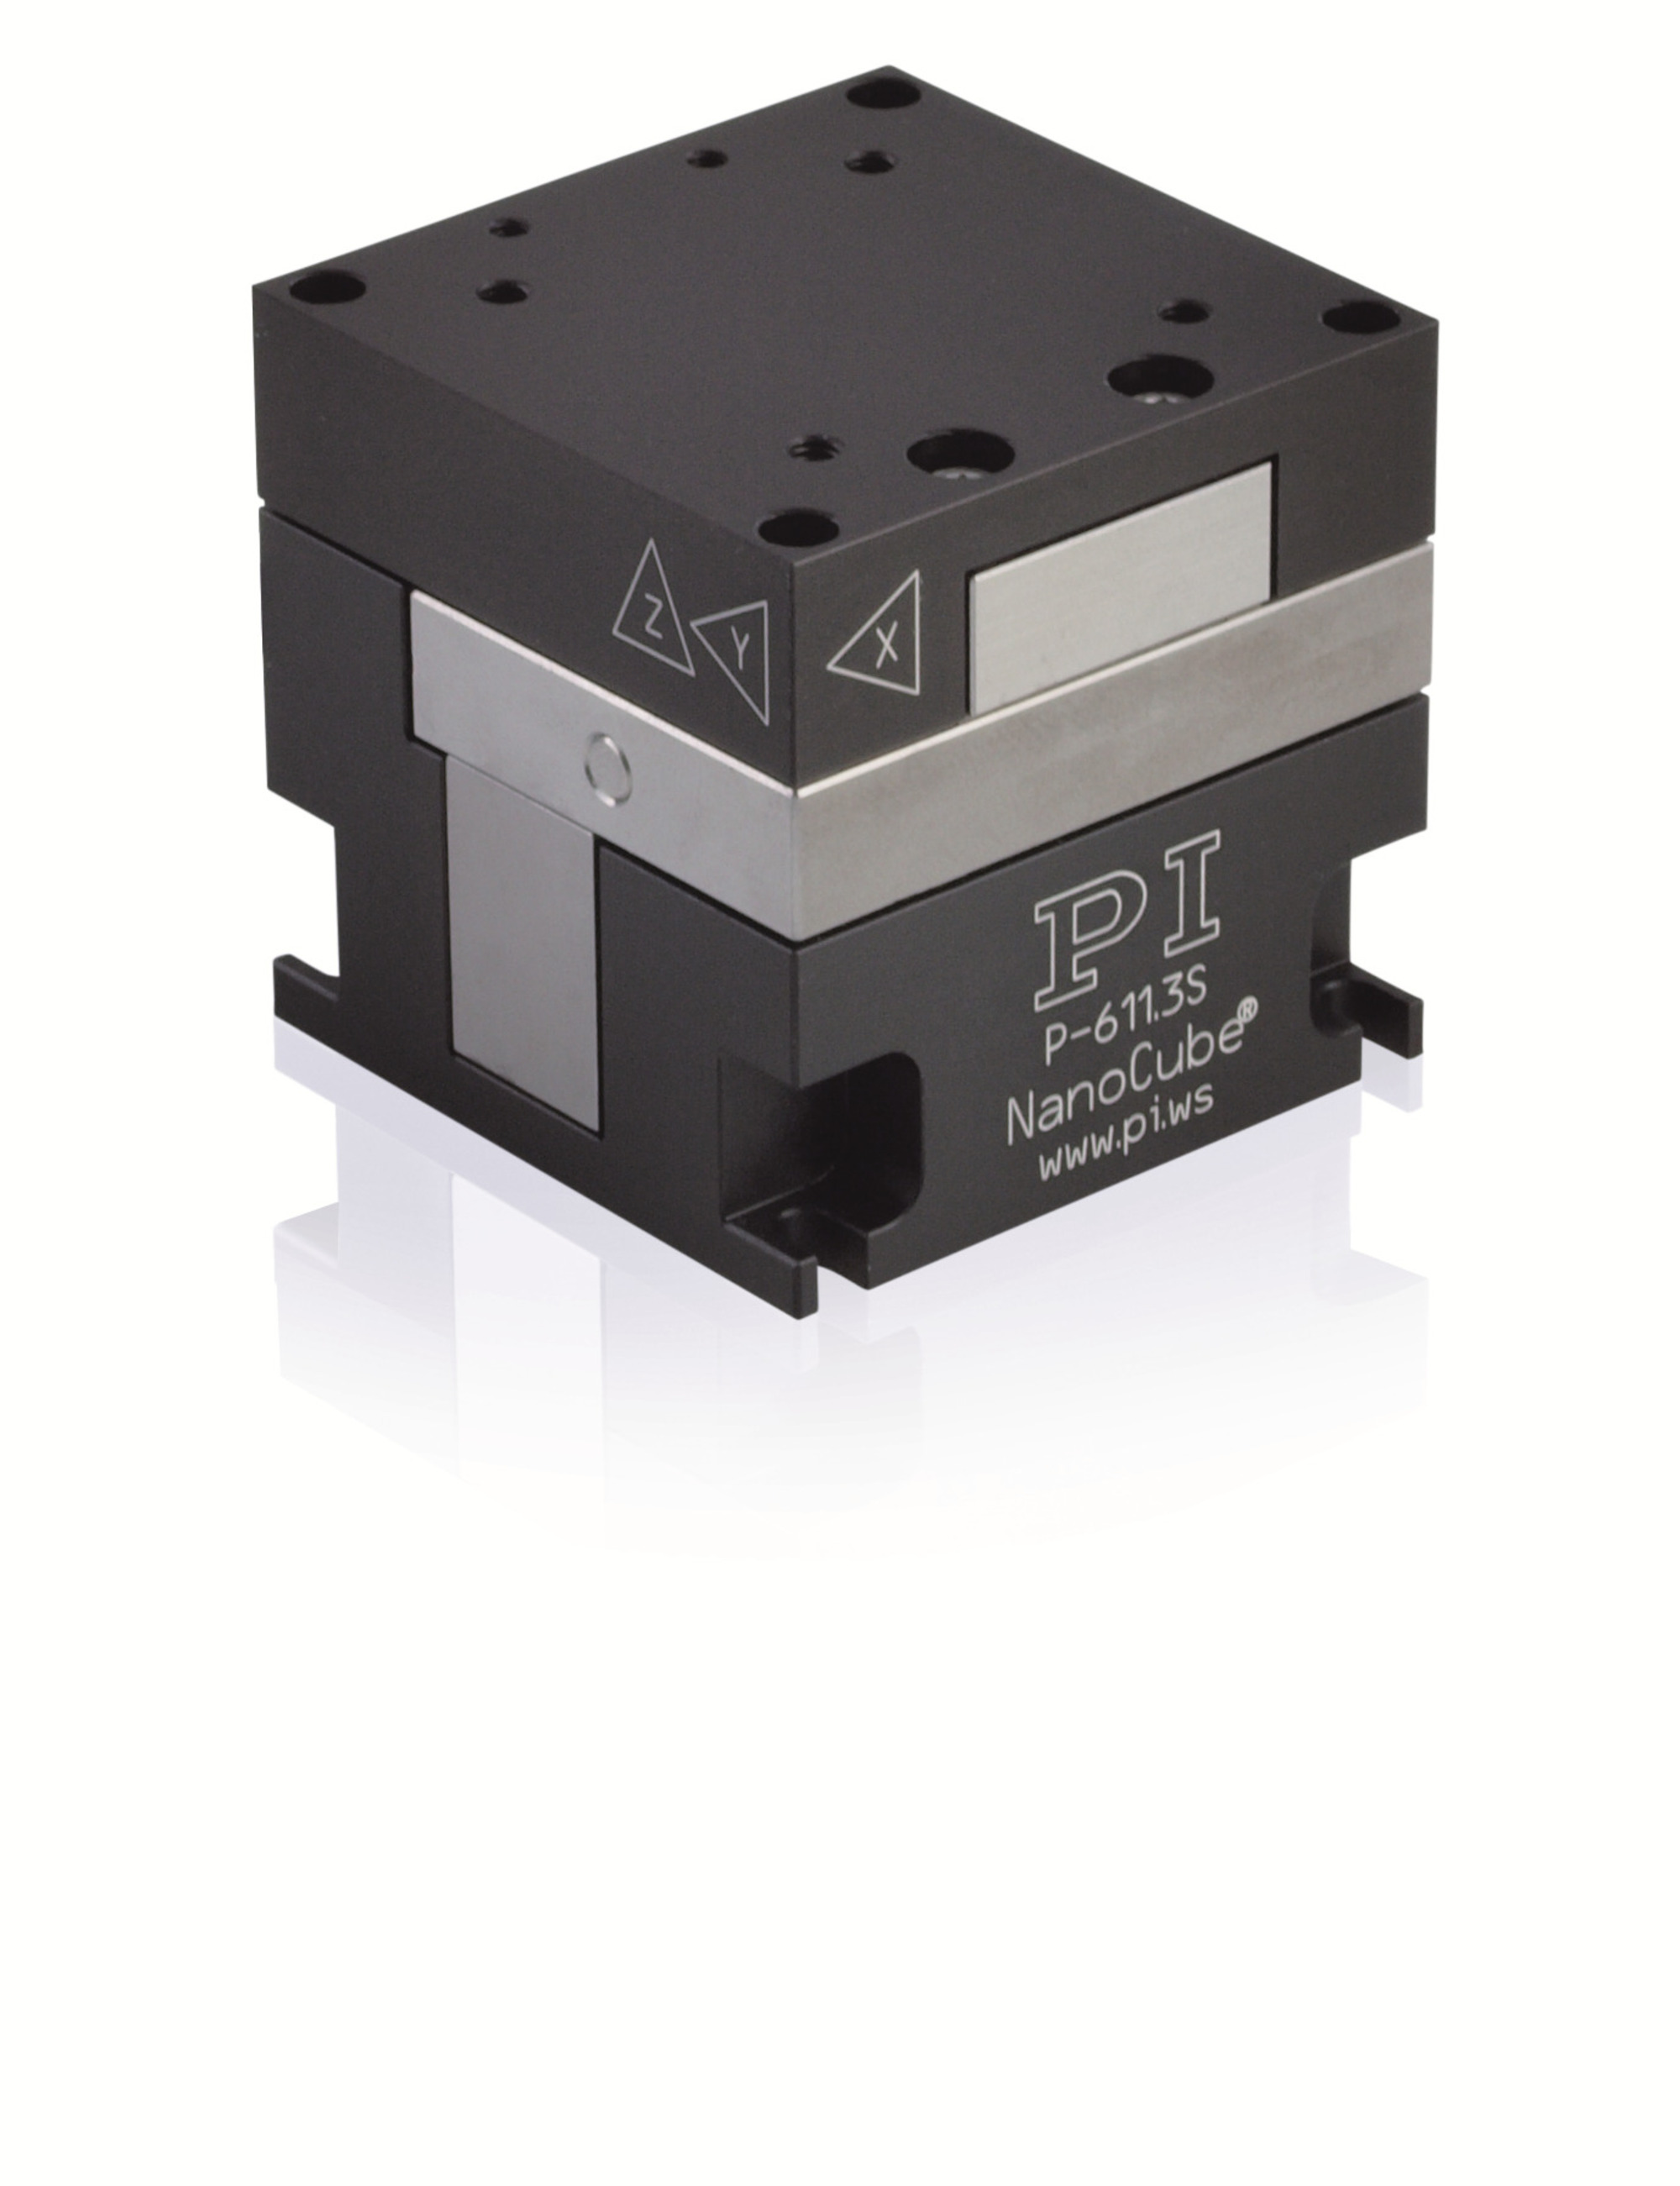 P 6113 Nanocube Xyz Piezo System Complesso Software For The Design Of Electronic Circuits Main